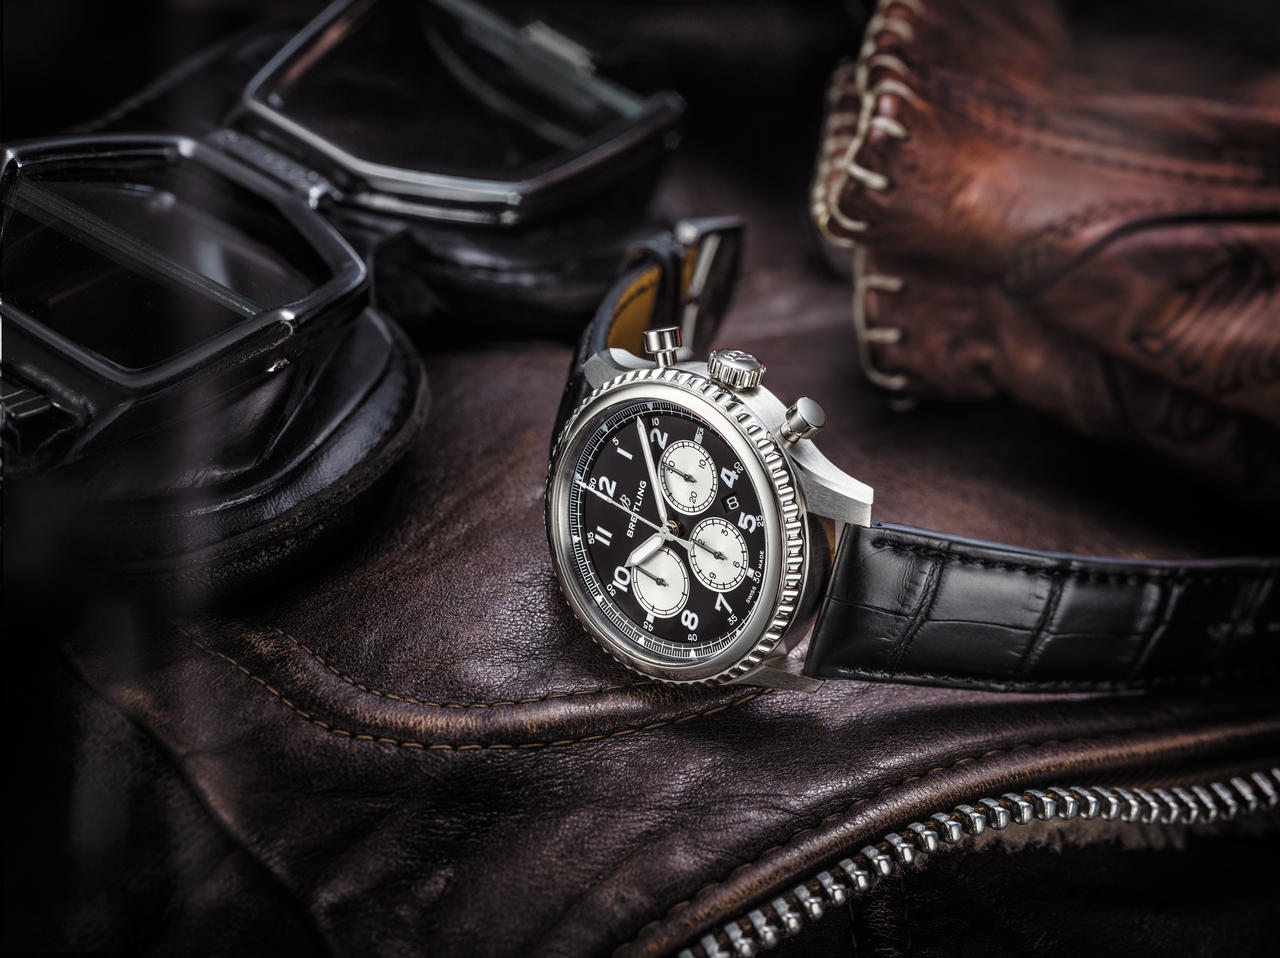 On The Wrist: The Breitling Navitimer 8 B01